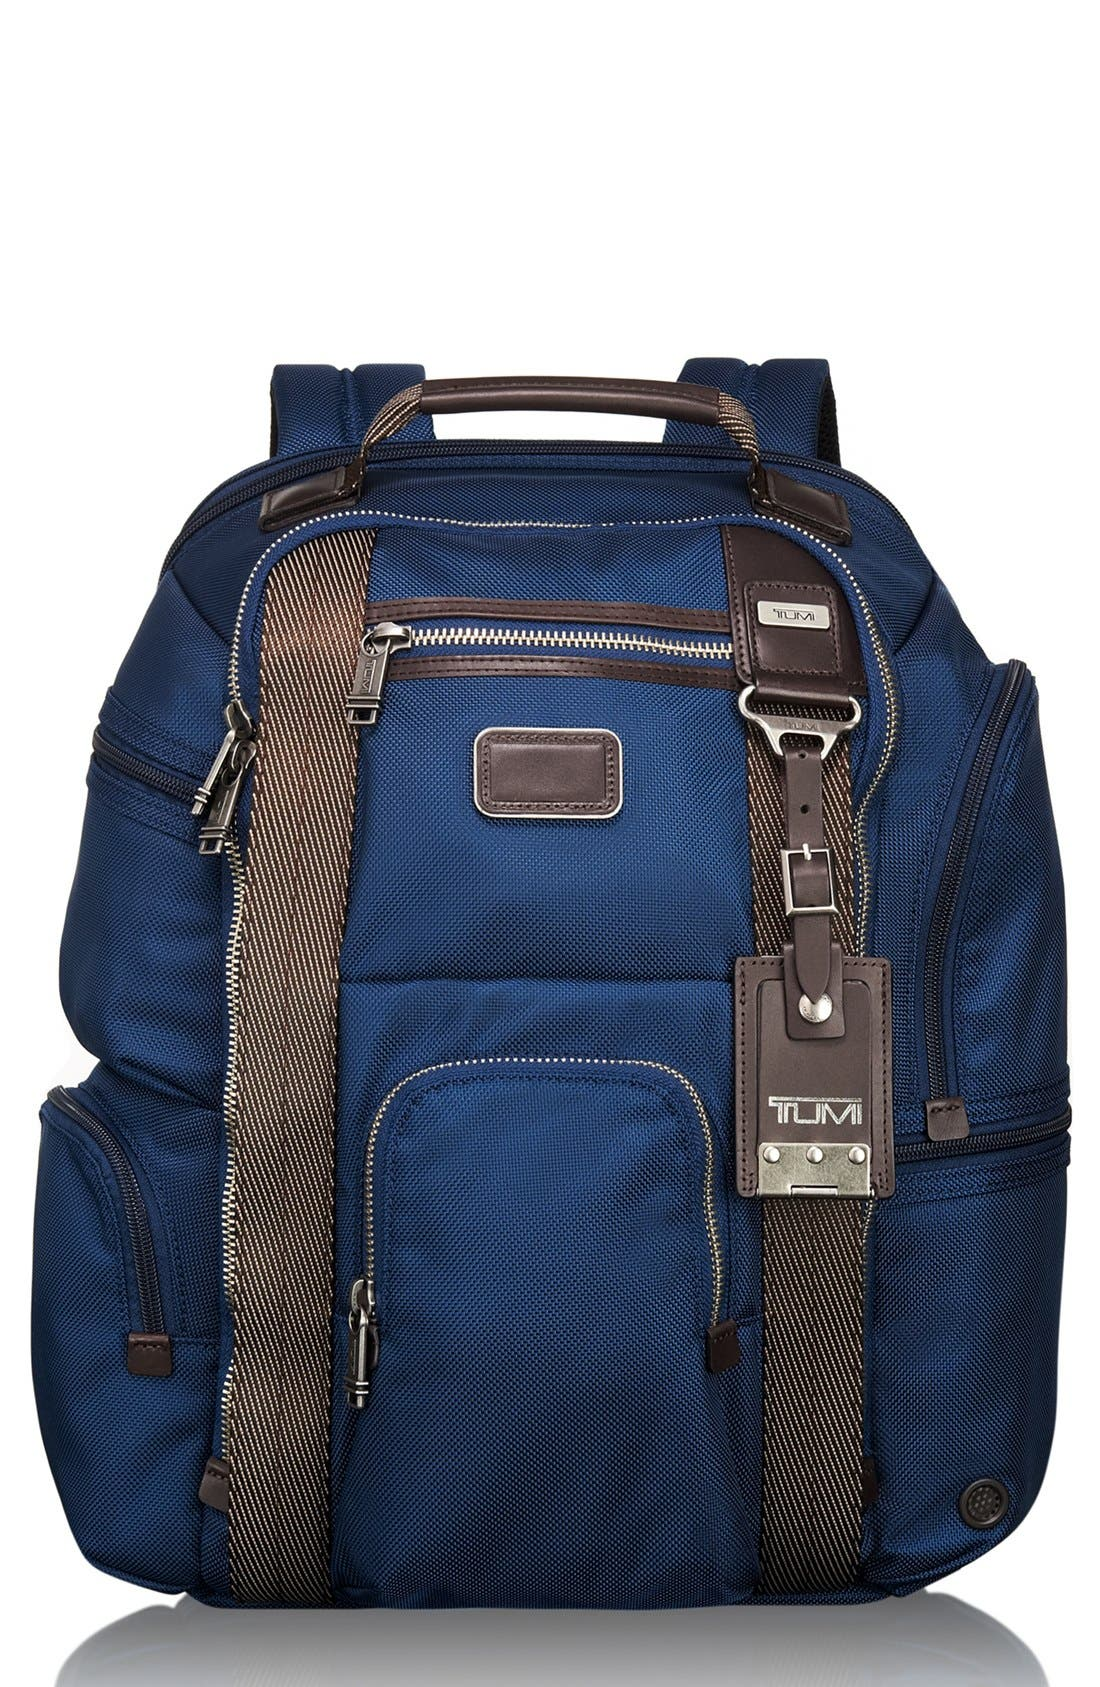 Alternate Image 1 Selected - Tumi 'Alpha Bravo - Kingsville' Deluxe BriefPack®